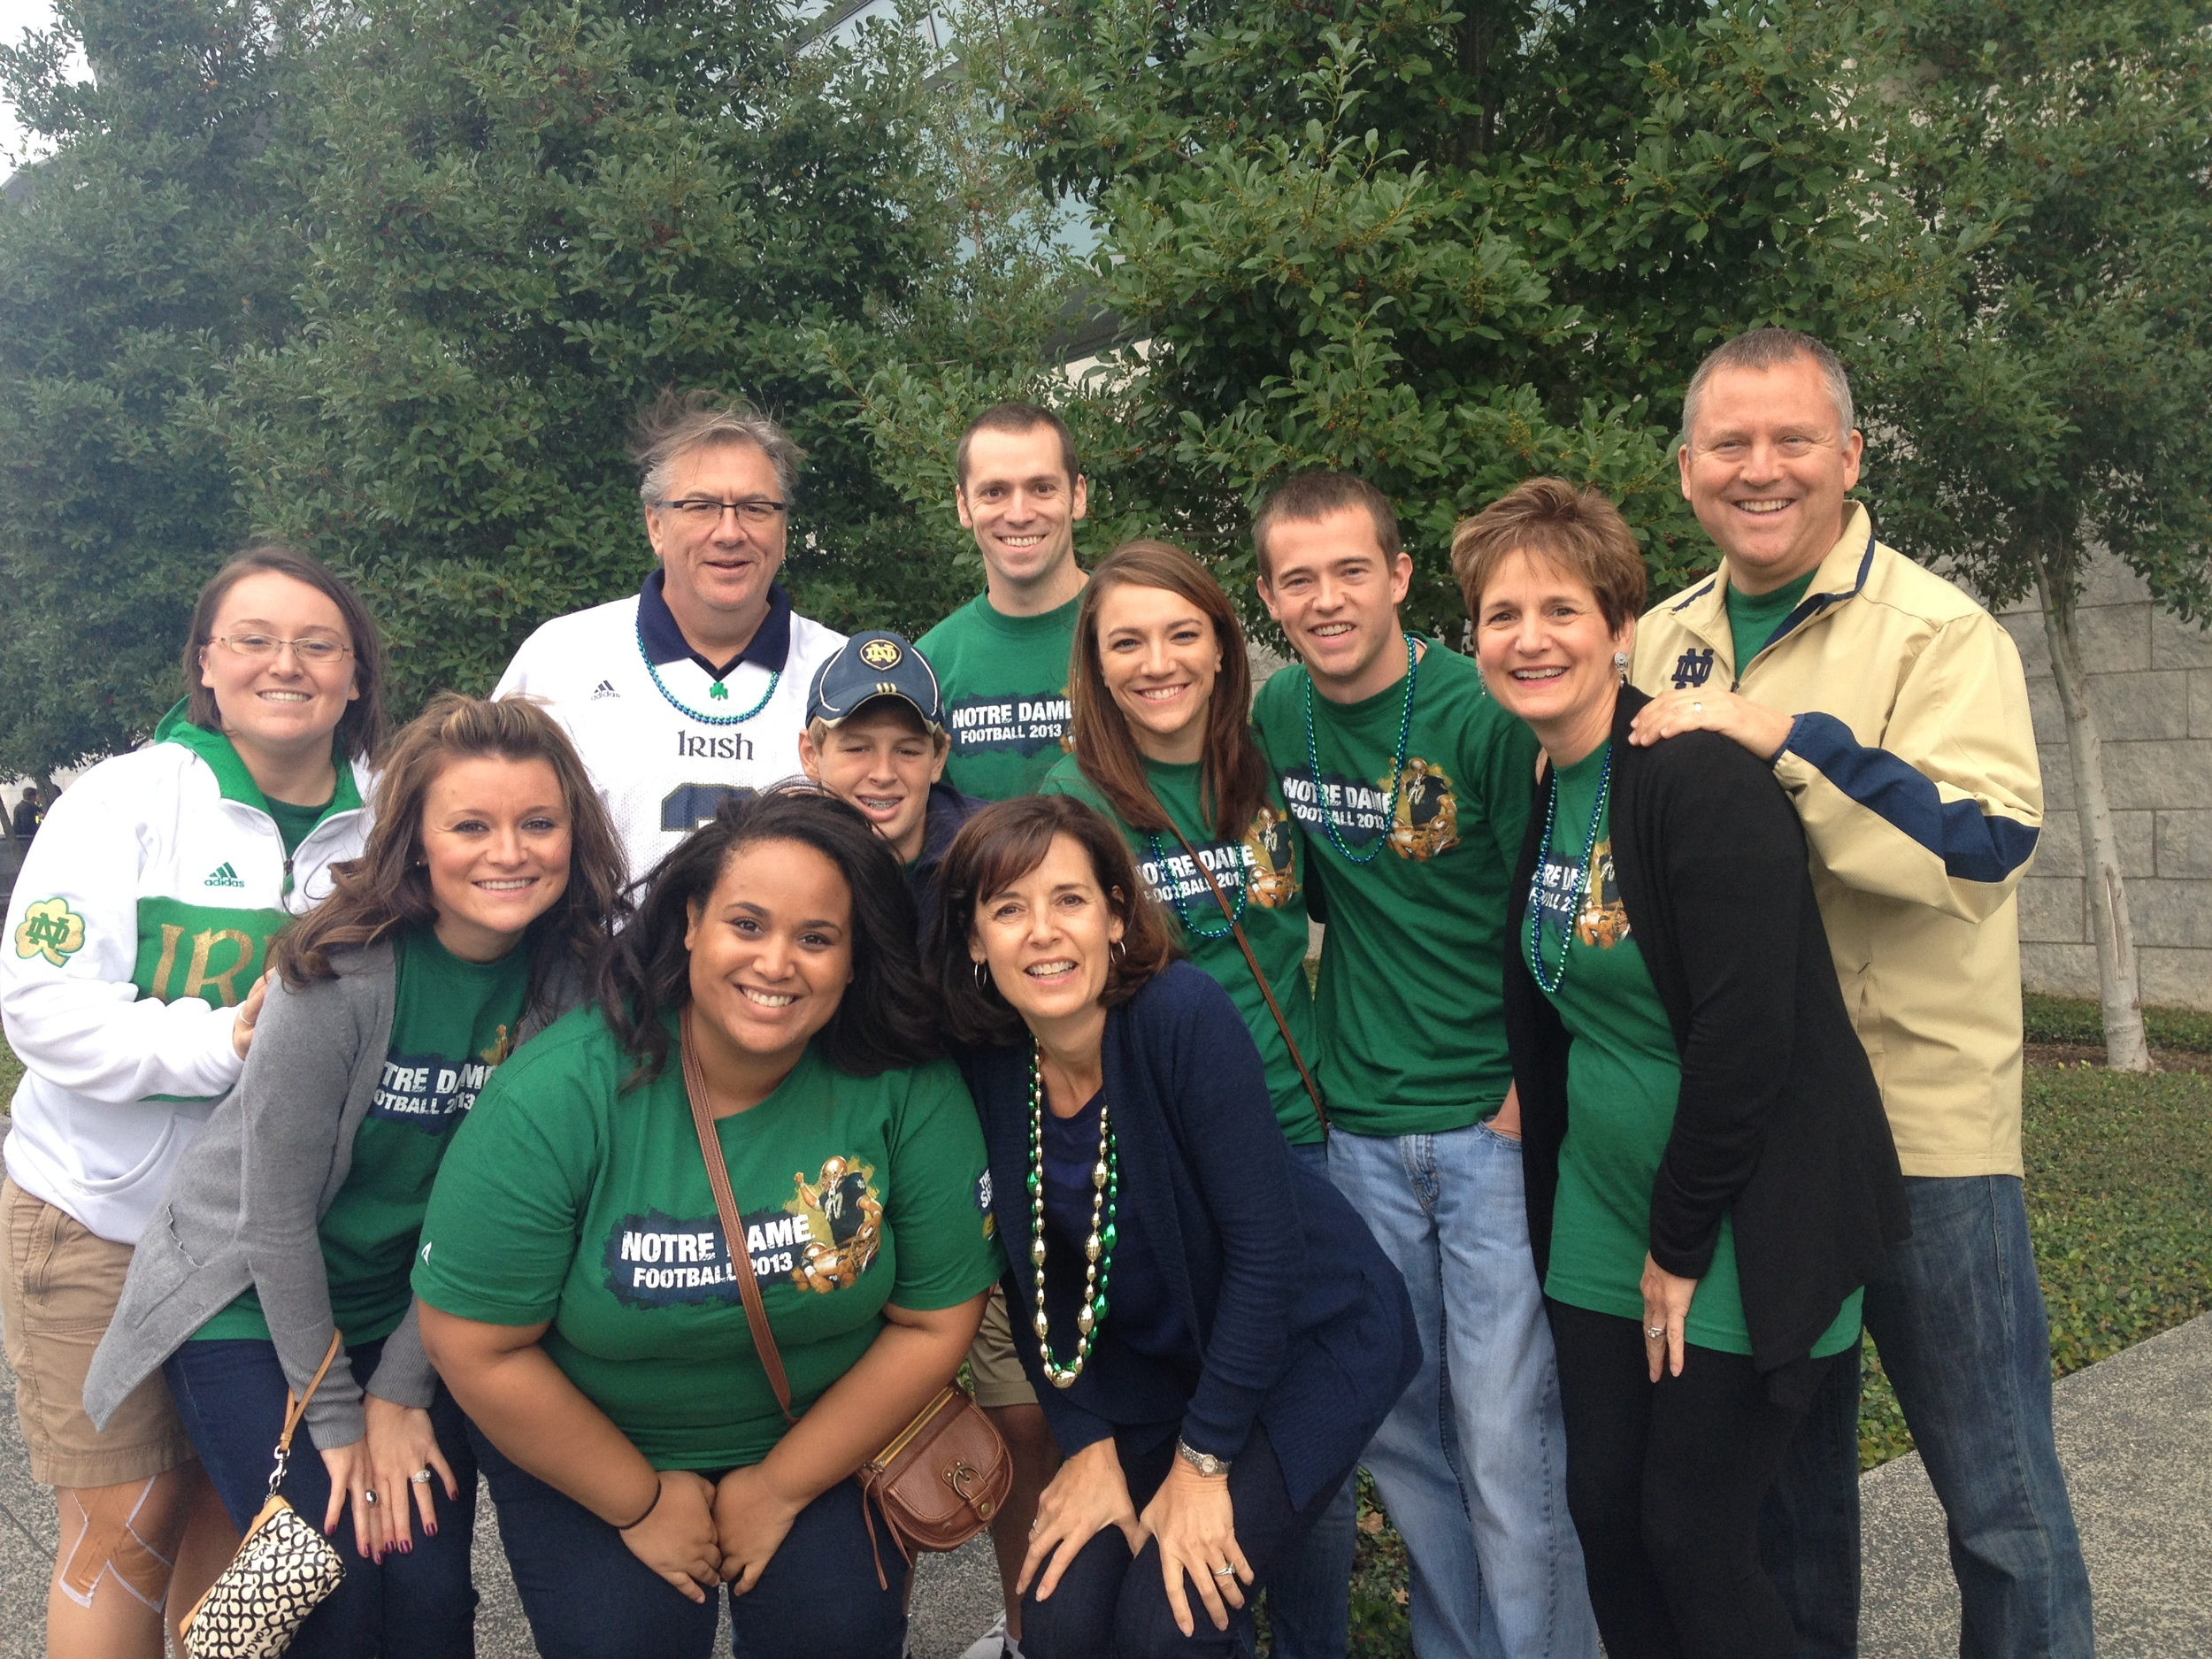 Some of my aunts, uncles and cousins before the ND vs. ASU game. WE WON!